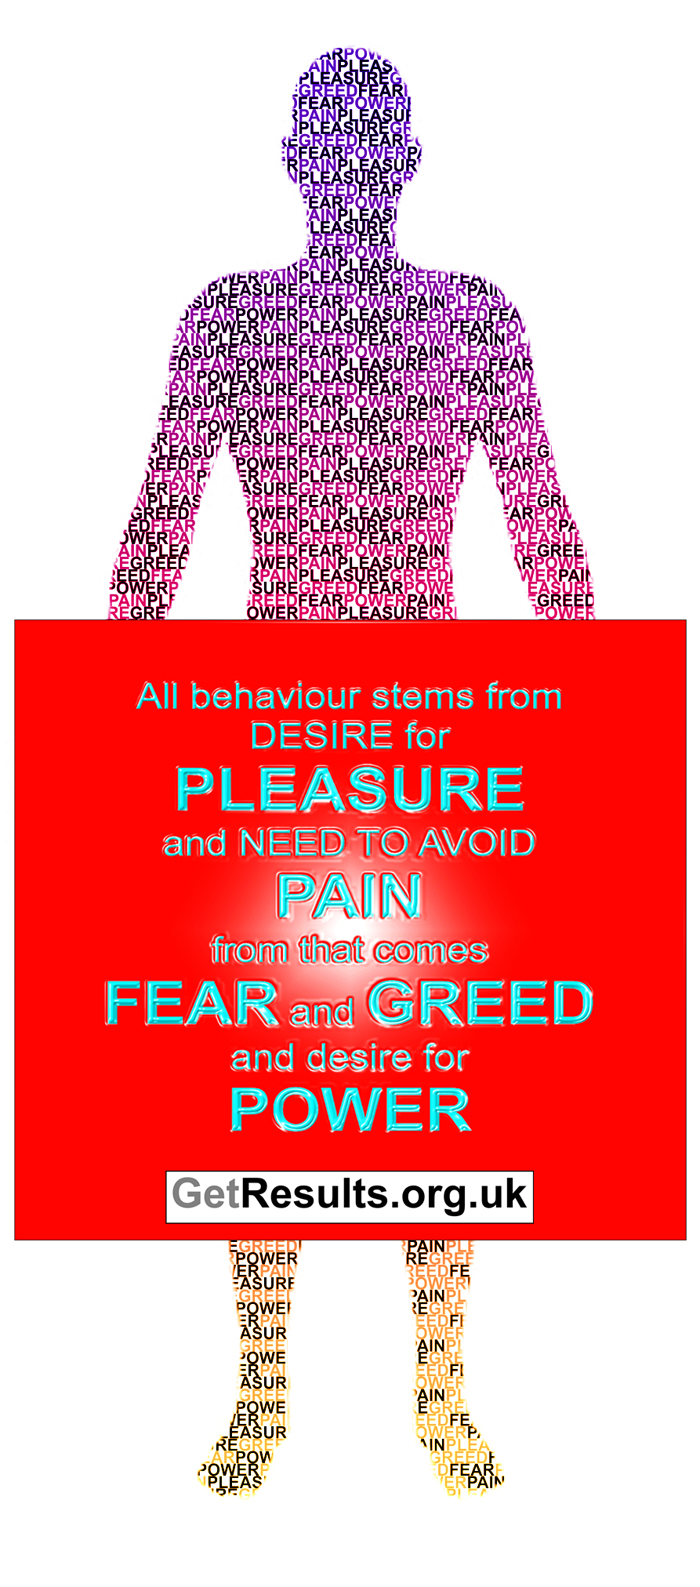 Get Results: The desire for pleasure and need to avoid pain